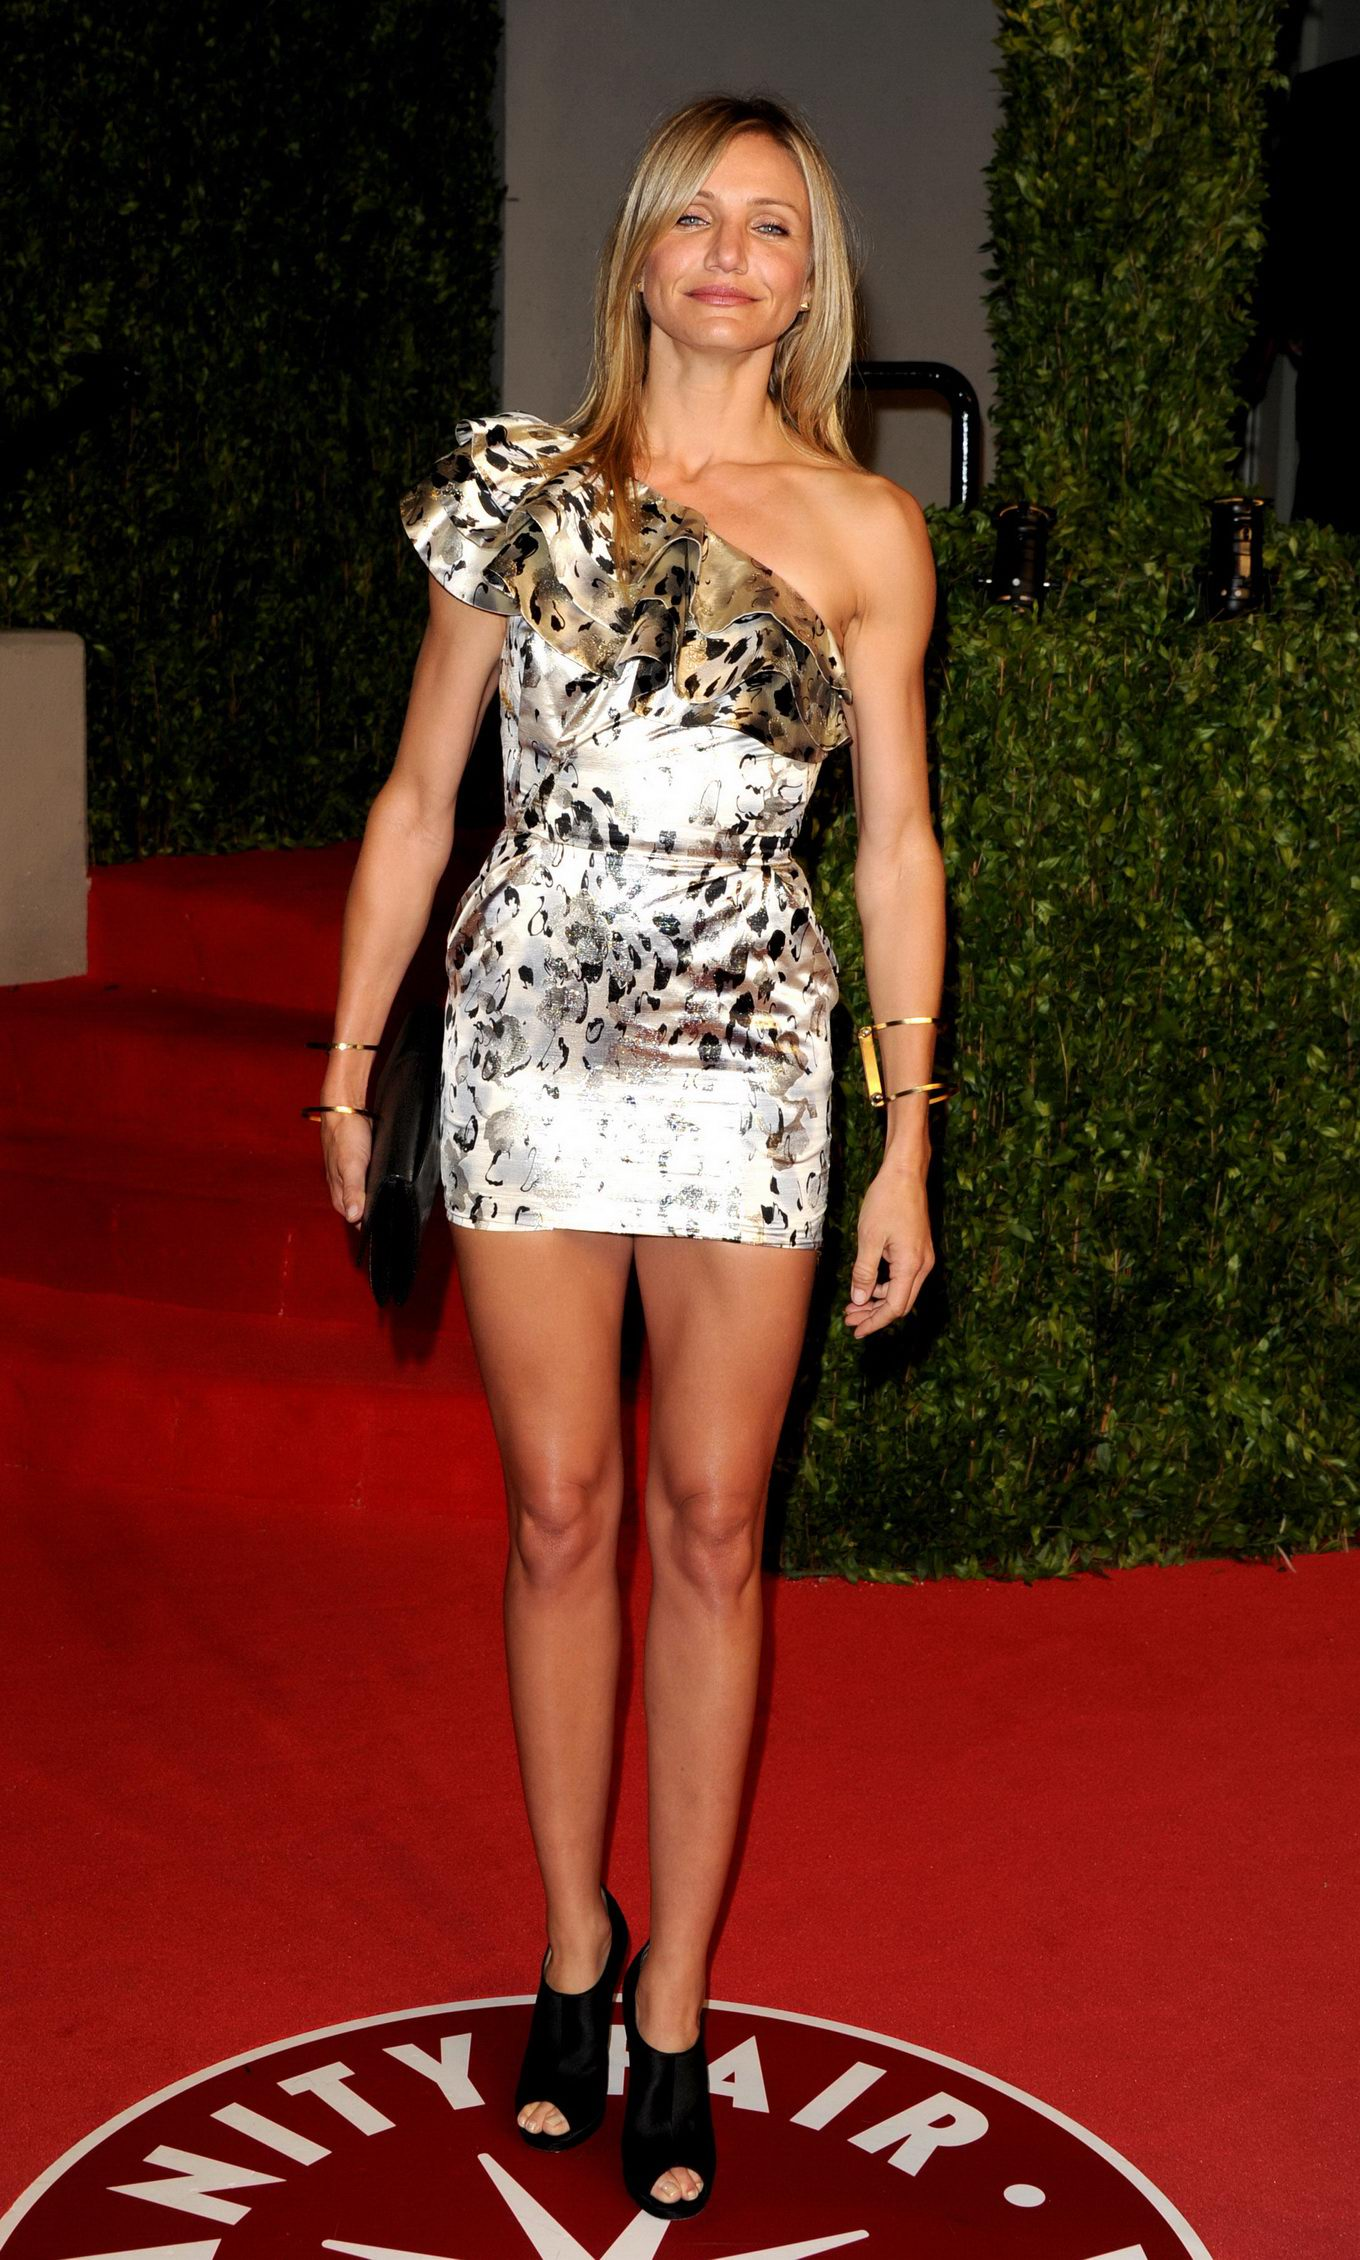 ... leggy wearing ultra short dress at the Vanity Fair Oscar Party in LA: galleries.pichunter.com/krawl/295/2952823/index.html